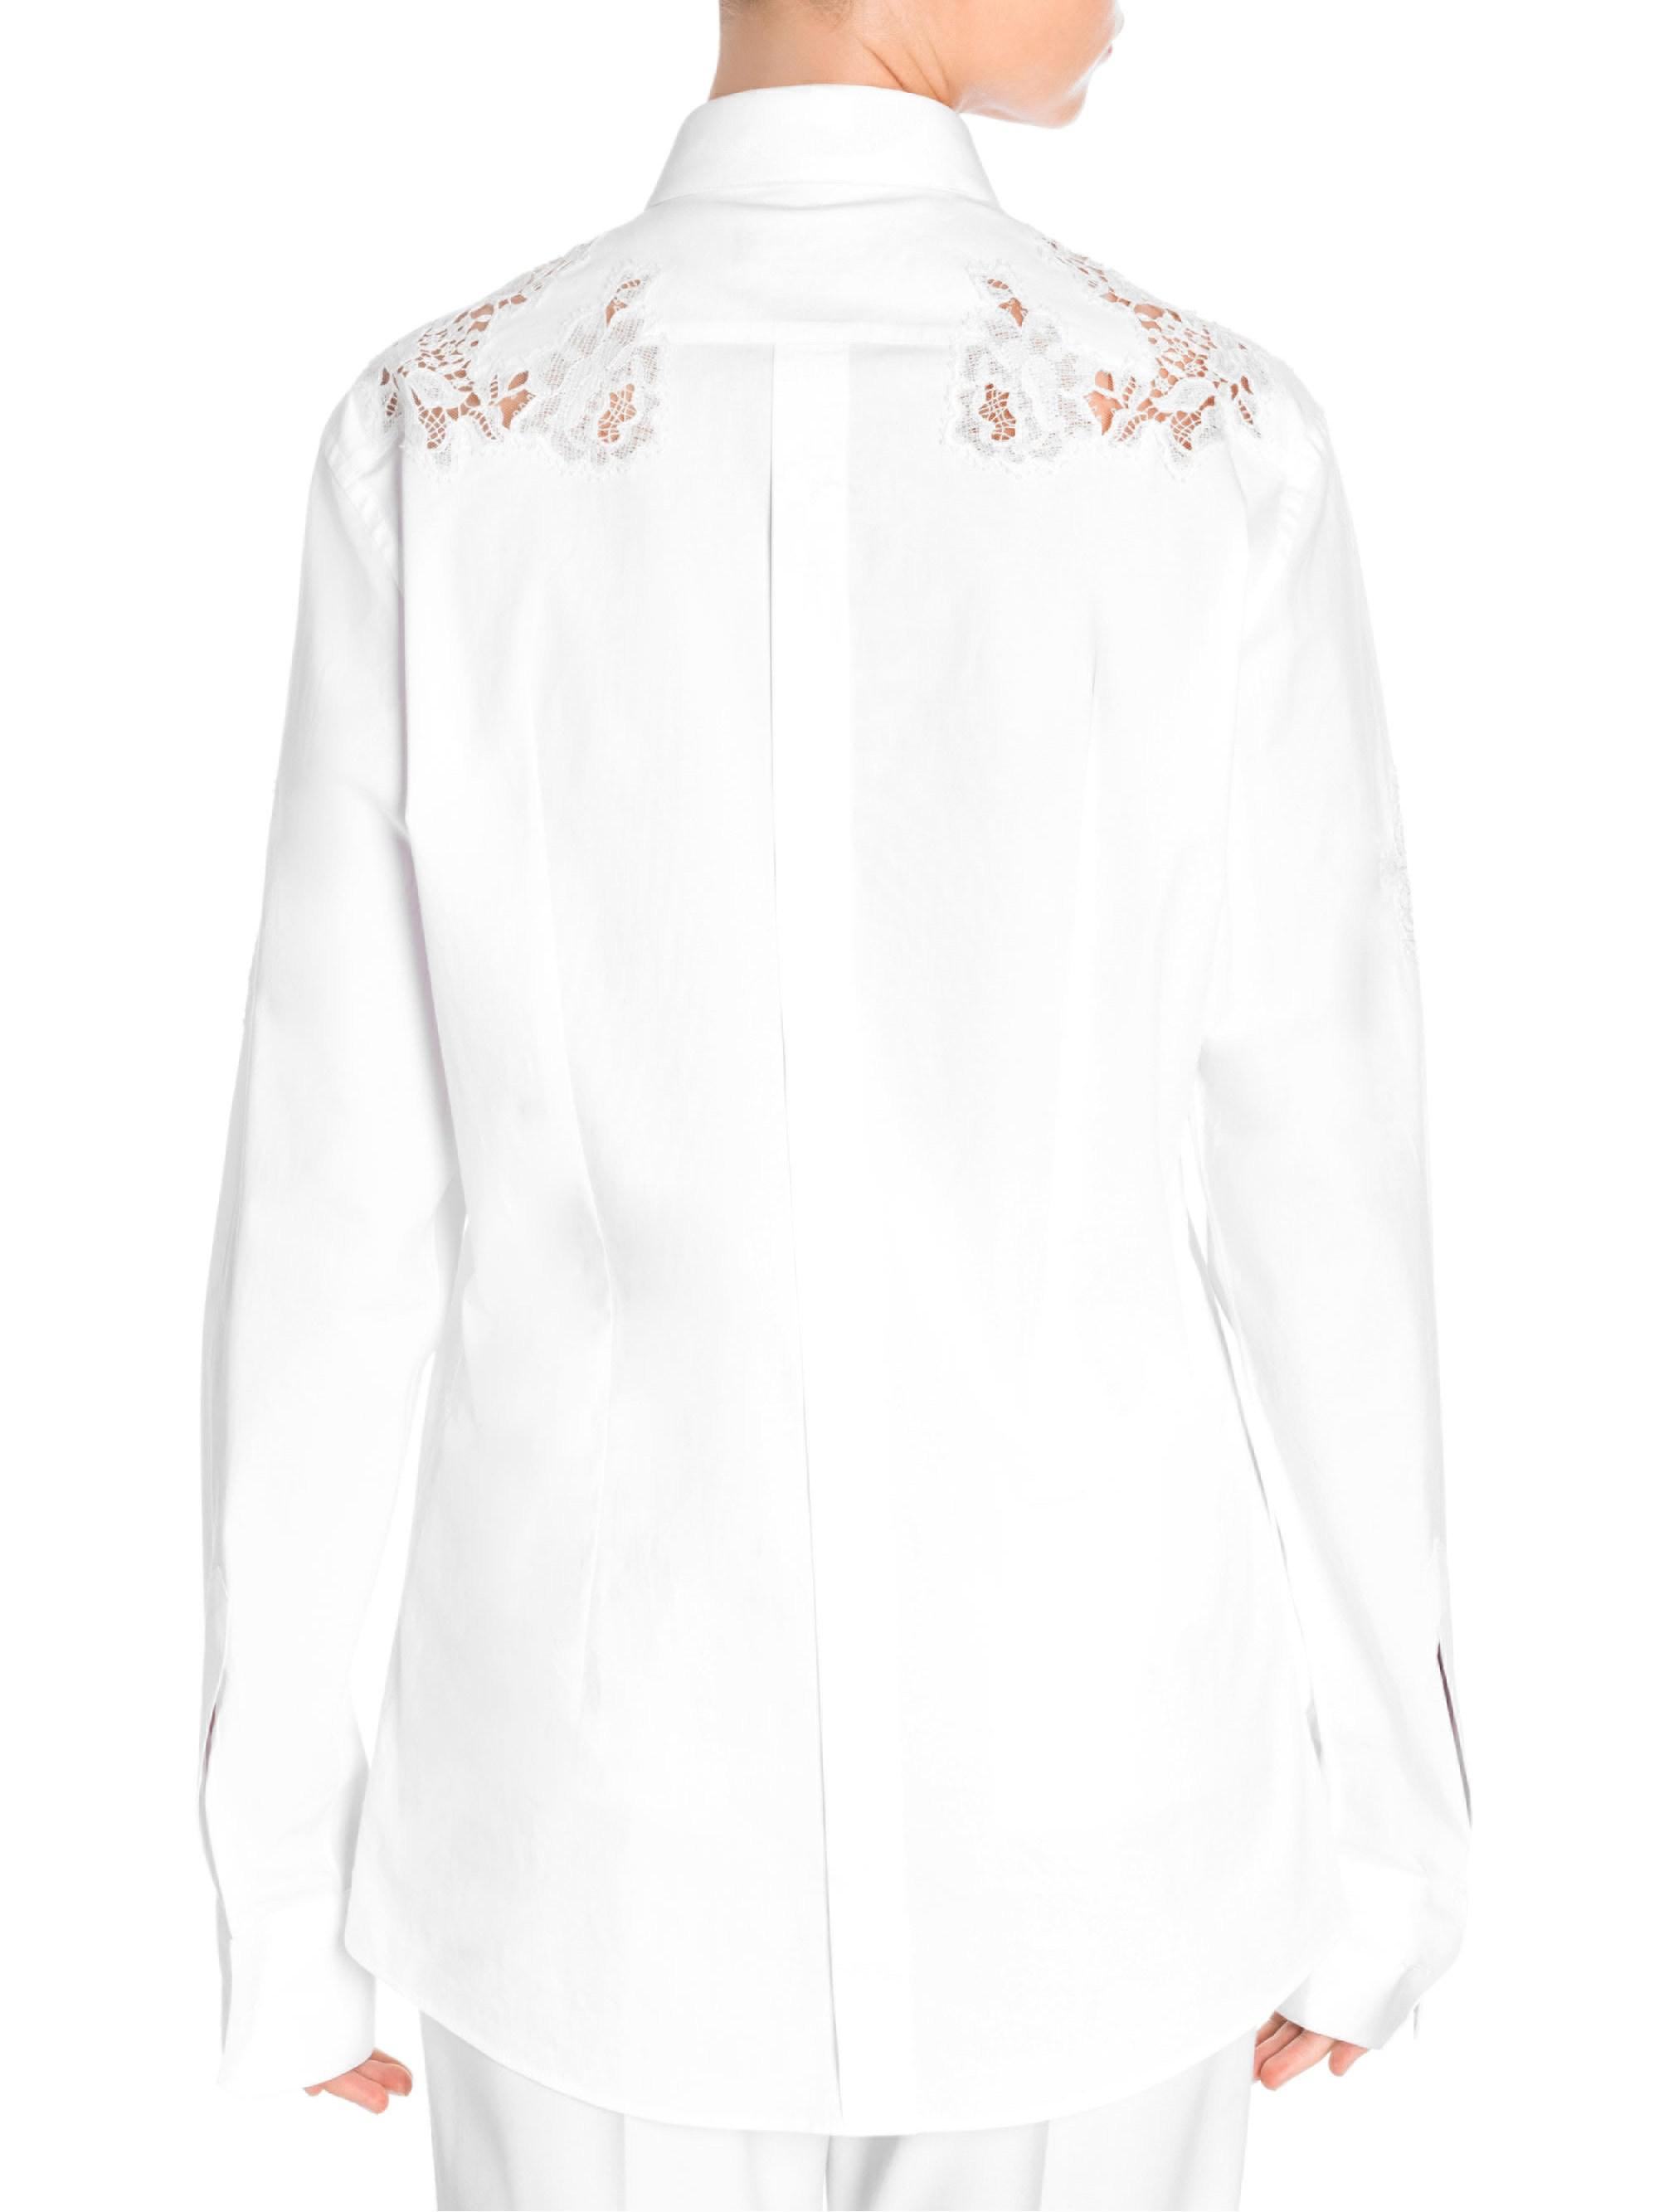 9da1190c Dolce & Gabbana Lace Inset Button-down Poplin Shirt in White - Lyst